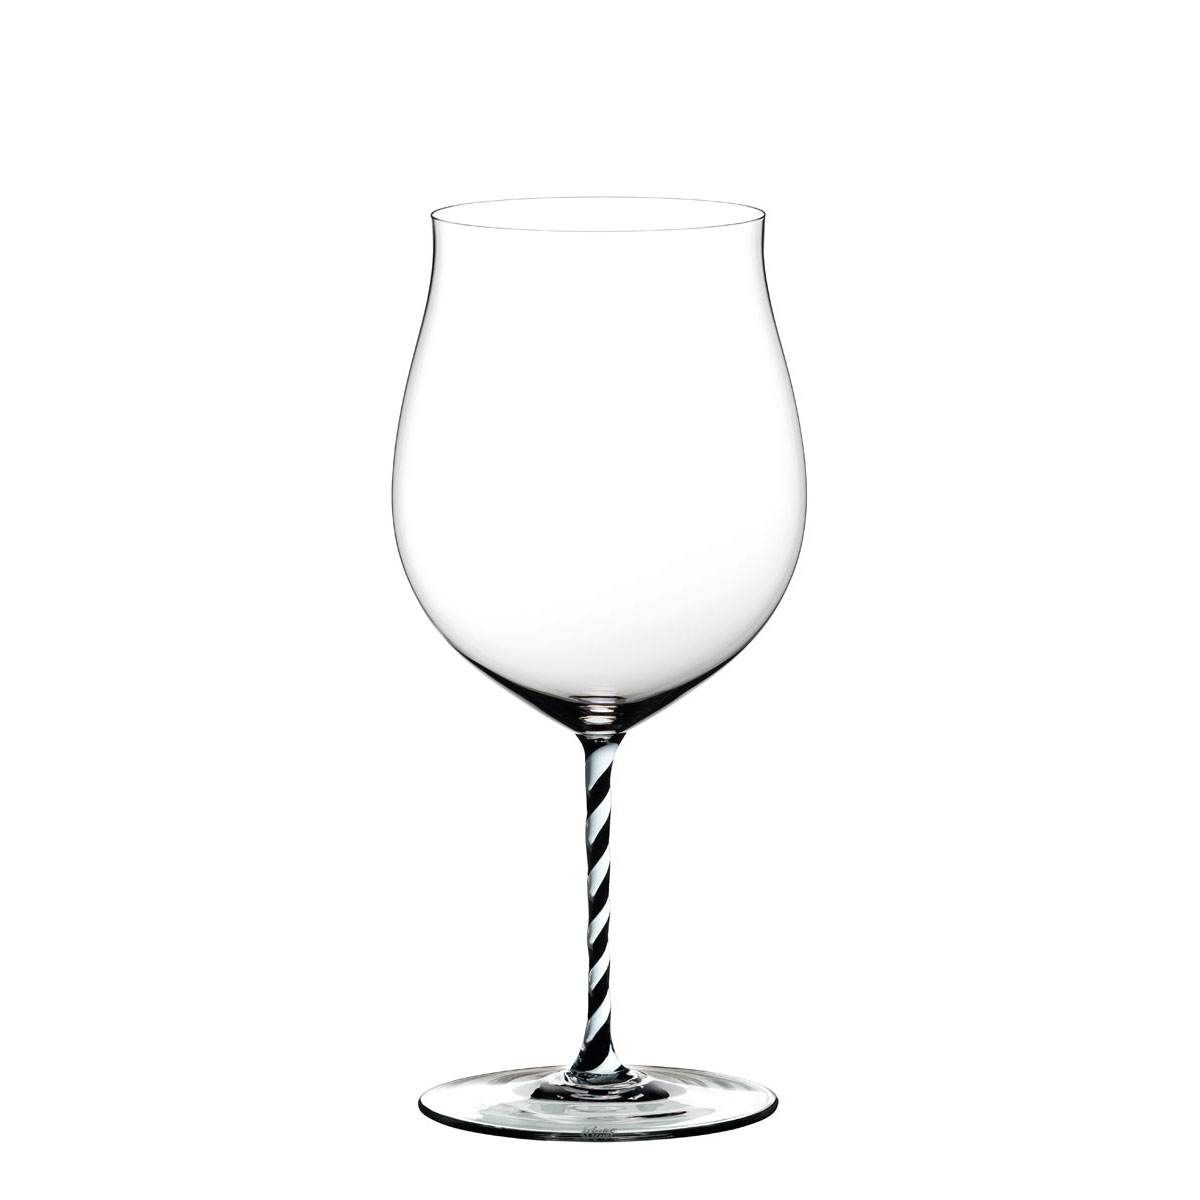 Riedel Fatto A Mano, Burgundy Grand Cru, Black and White Twist Wine Glass